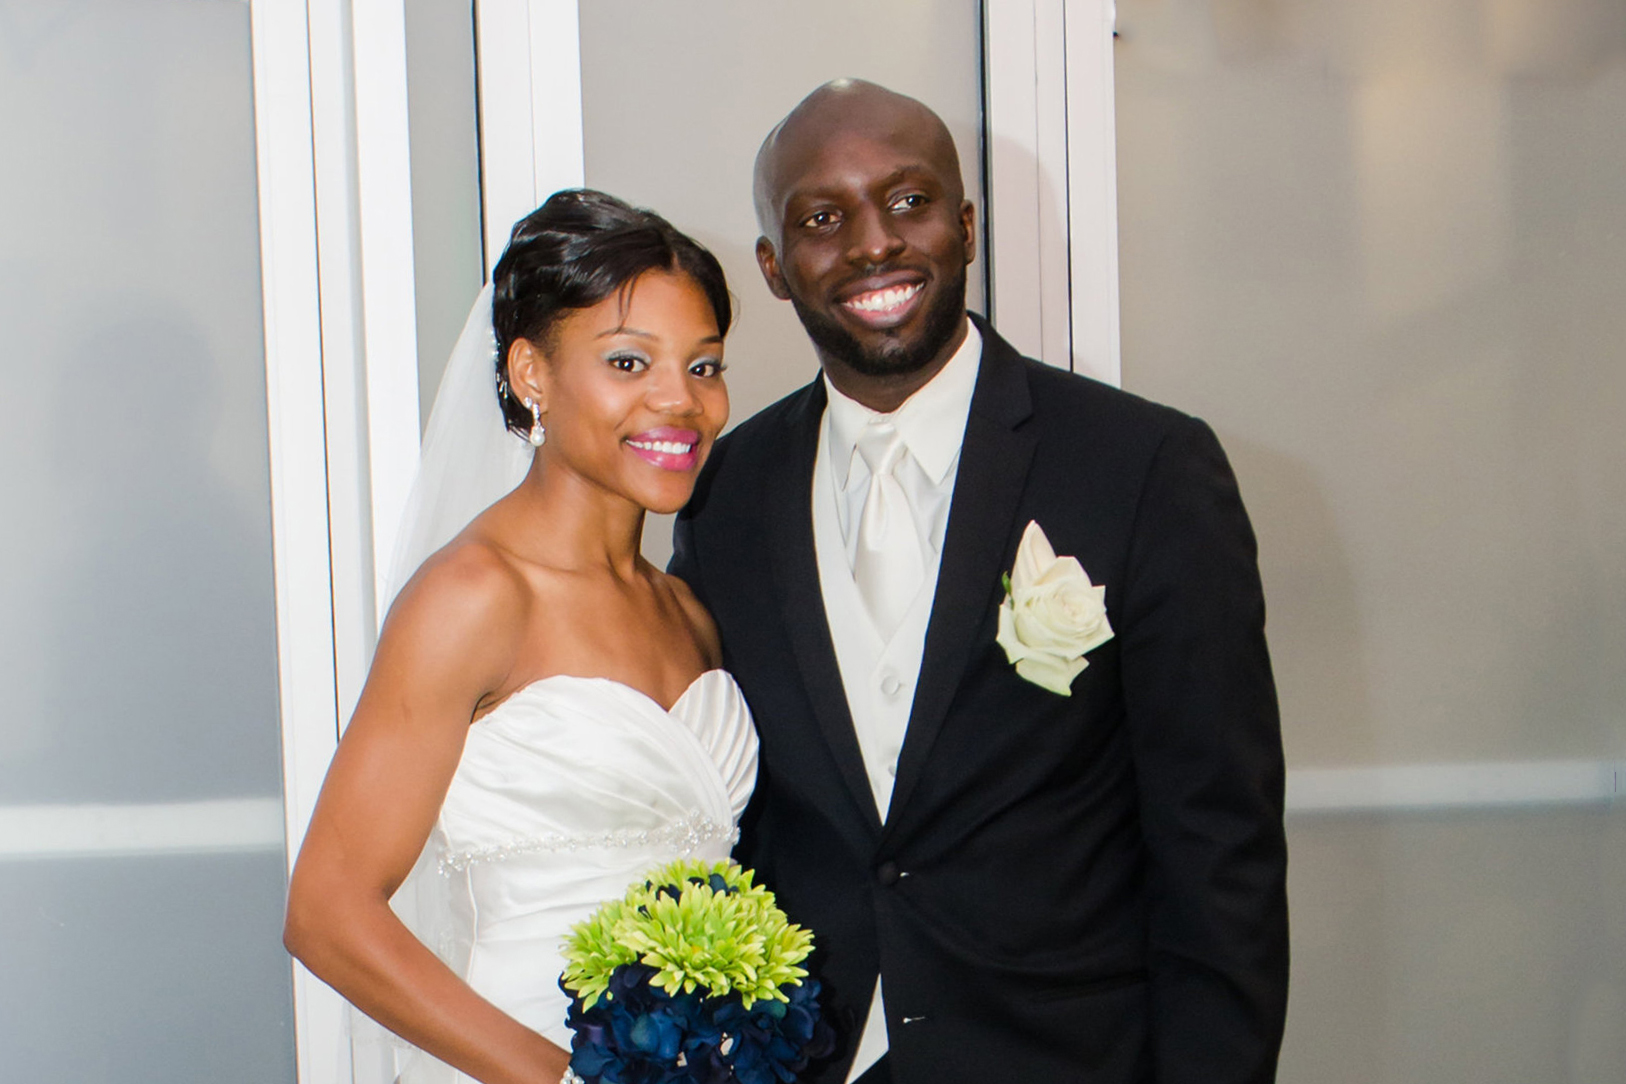 cultural_wedding_houston_photo